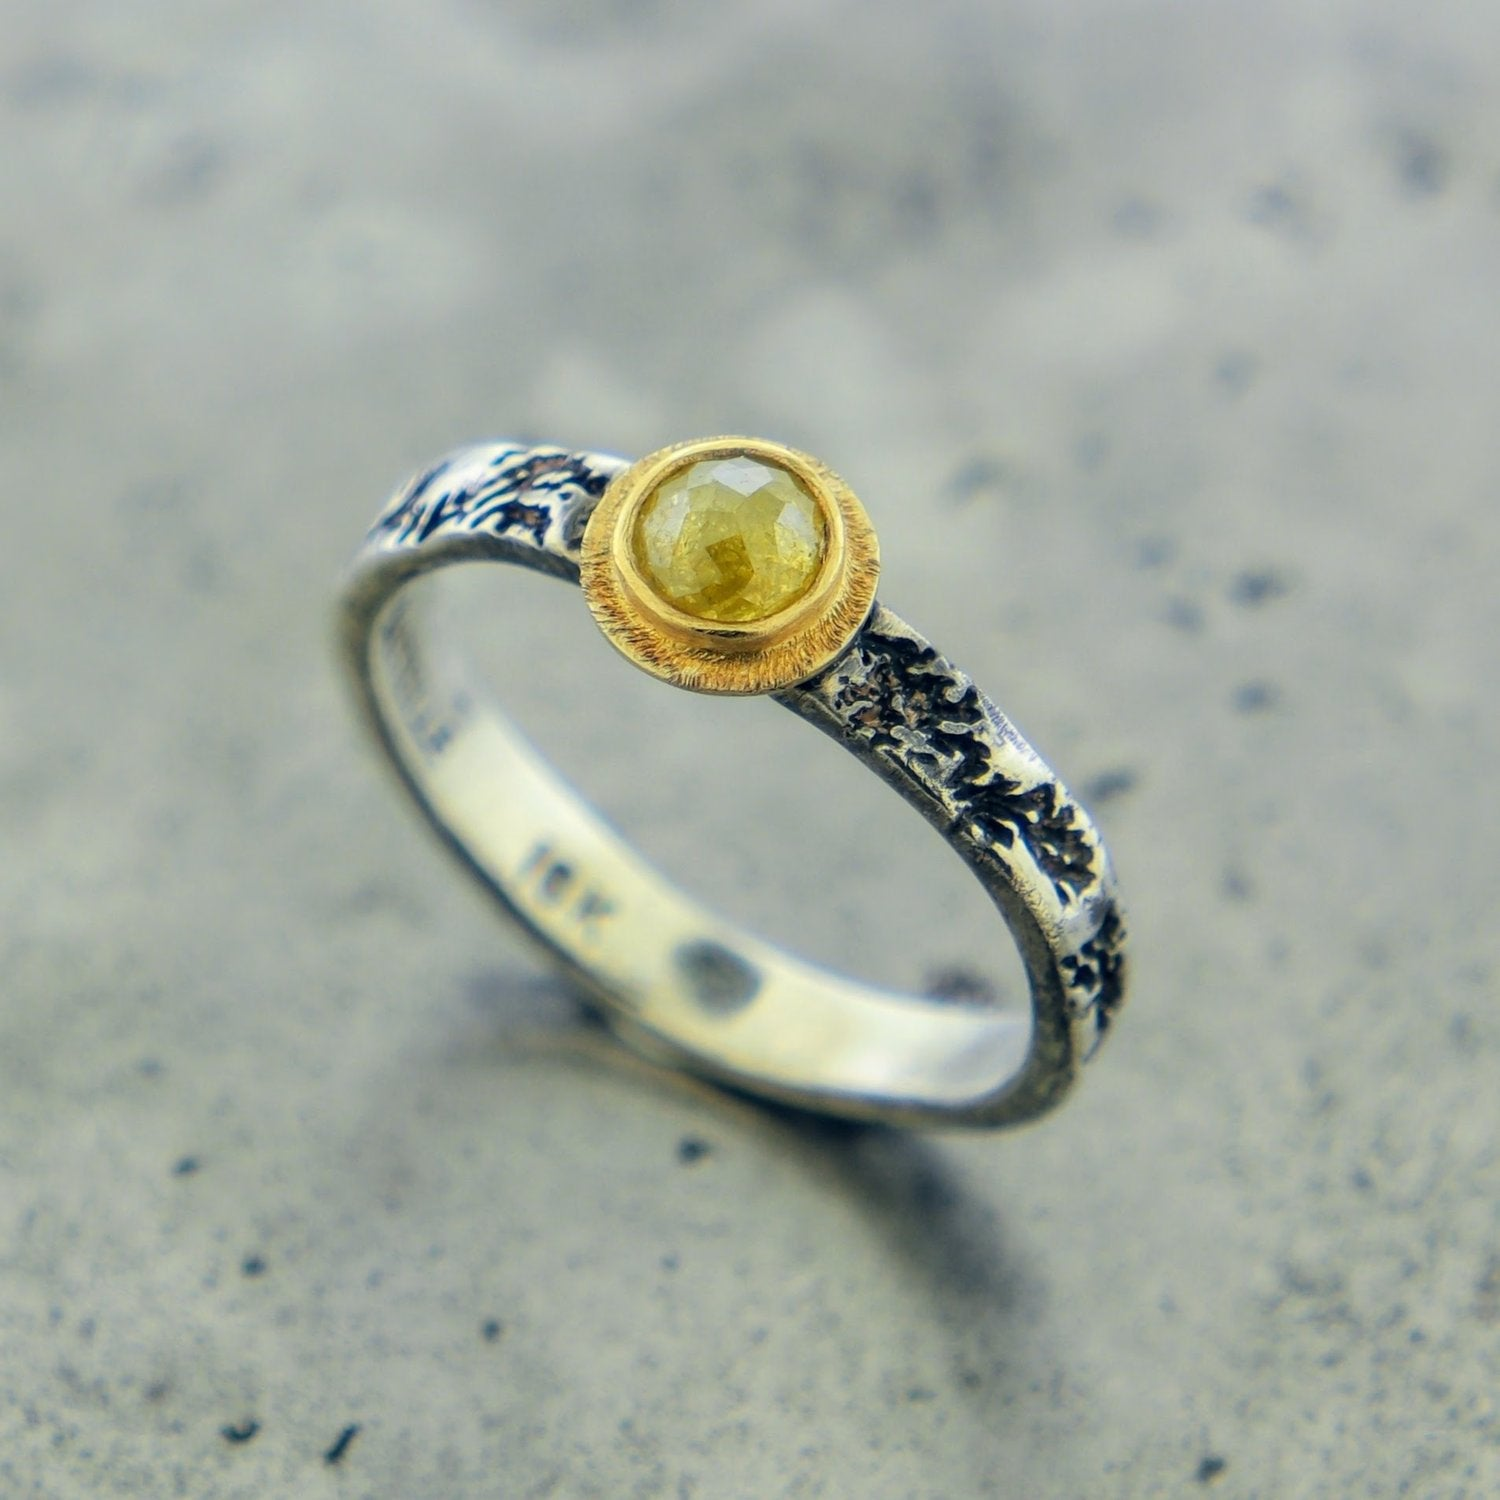 STERLING SILVER AND YELLOW DIAMOND RING